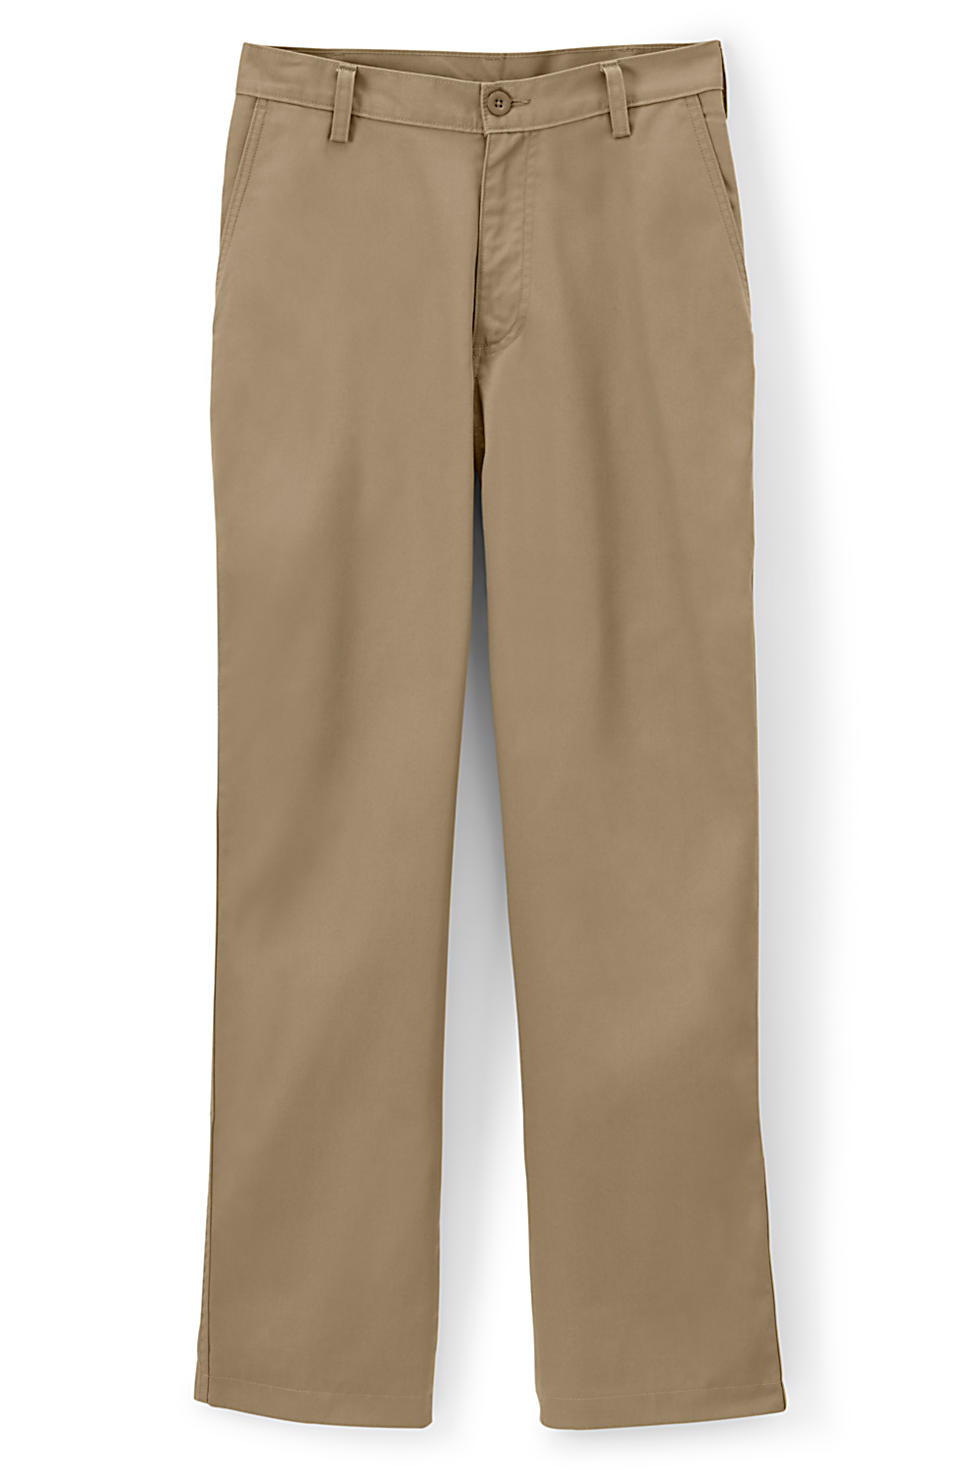 Lands End Men's Basic Work Pants (2 color options)